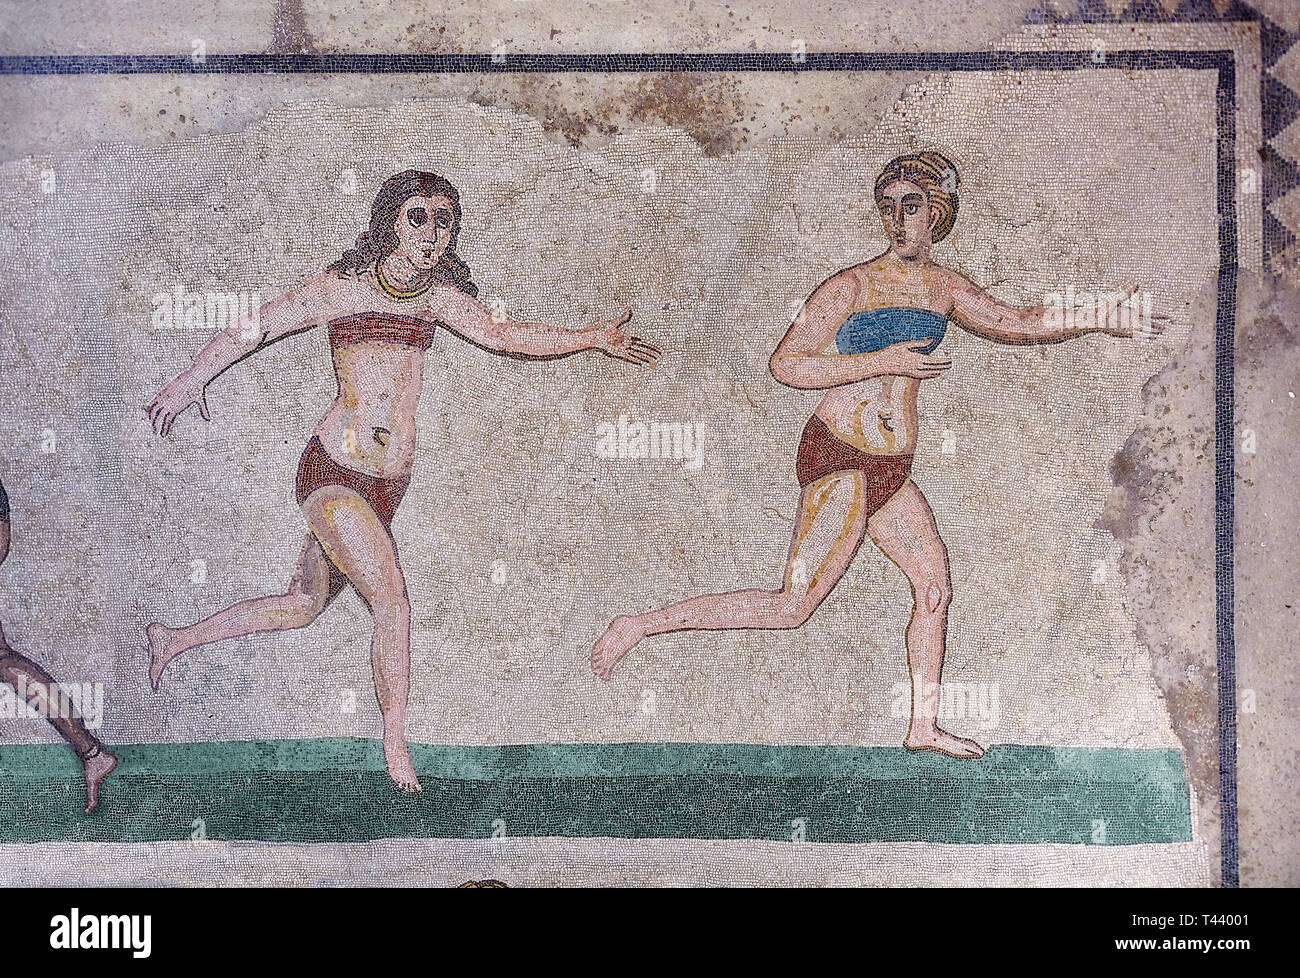 Mosaic detail fron the Room of the Ten Bikini Girls, room no 30, from the Ambulatory of The Great Hunt, room no 28,  at the Villa Romana del Casale wh - Stock Image